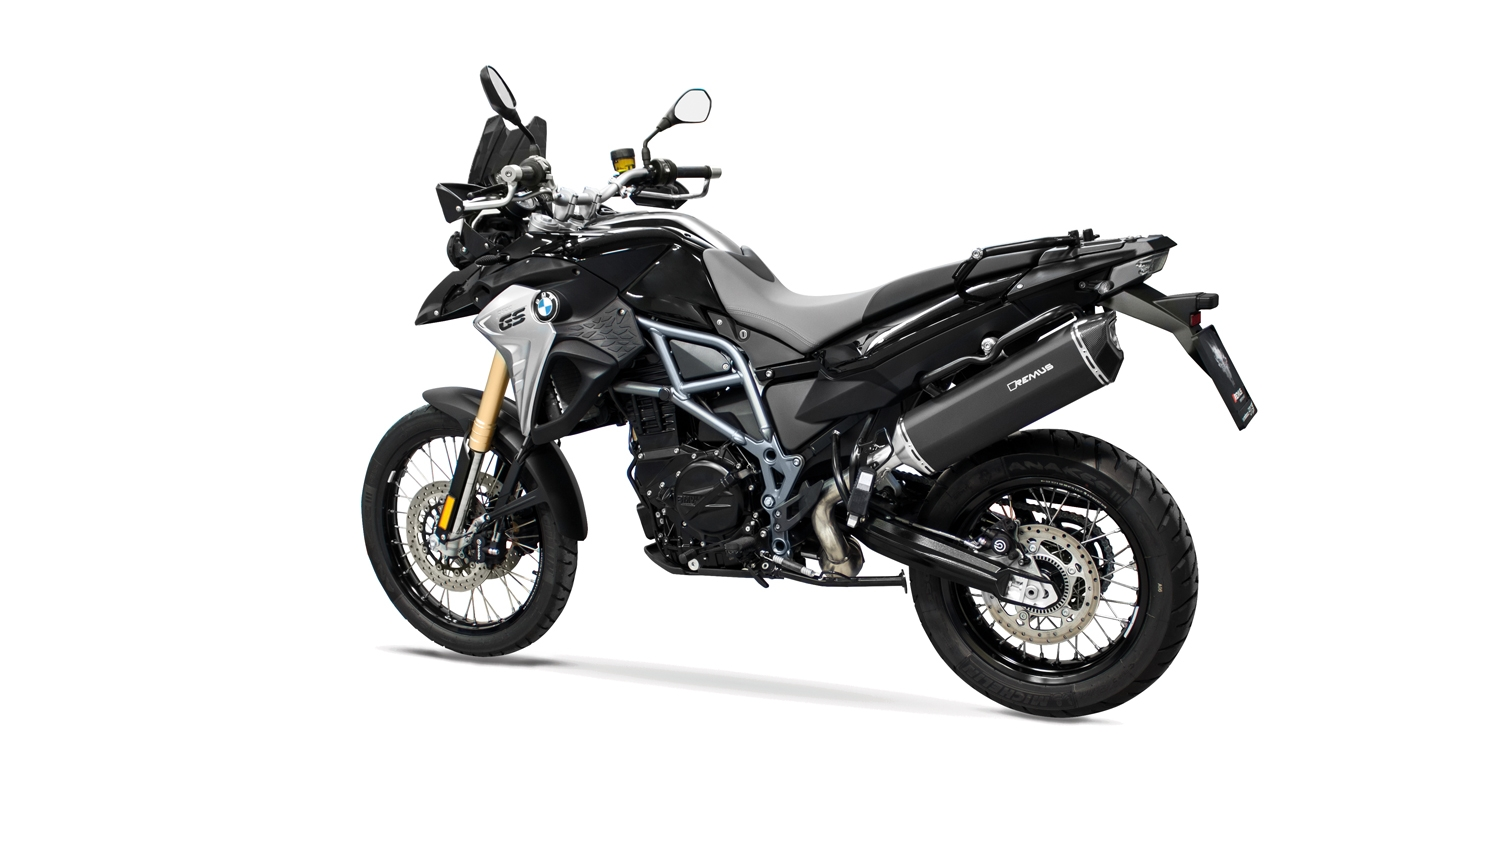 remus news bike info 14 17 bmw f 800 gs f 700 gs mod 2017 euro 4. Black Bedroom Furniture Sets. Home Design Ideas